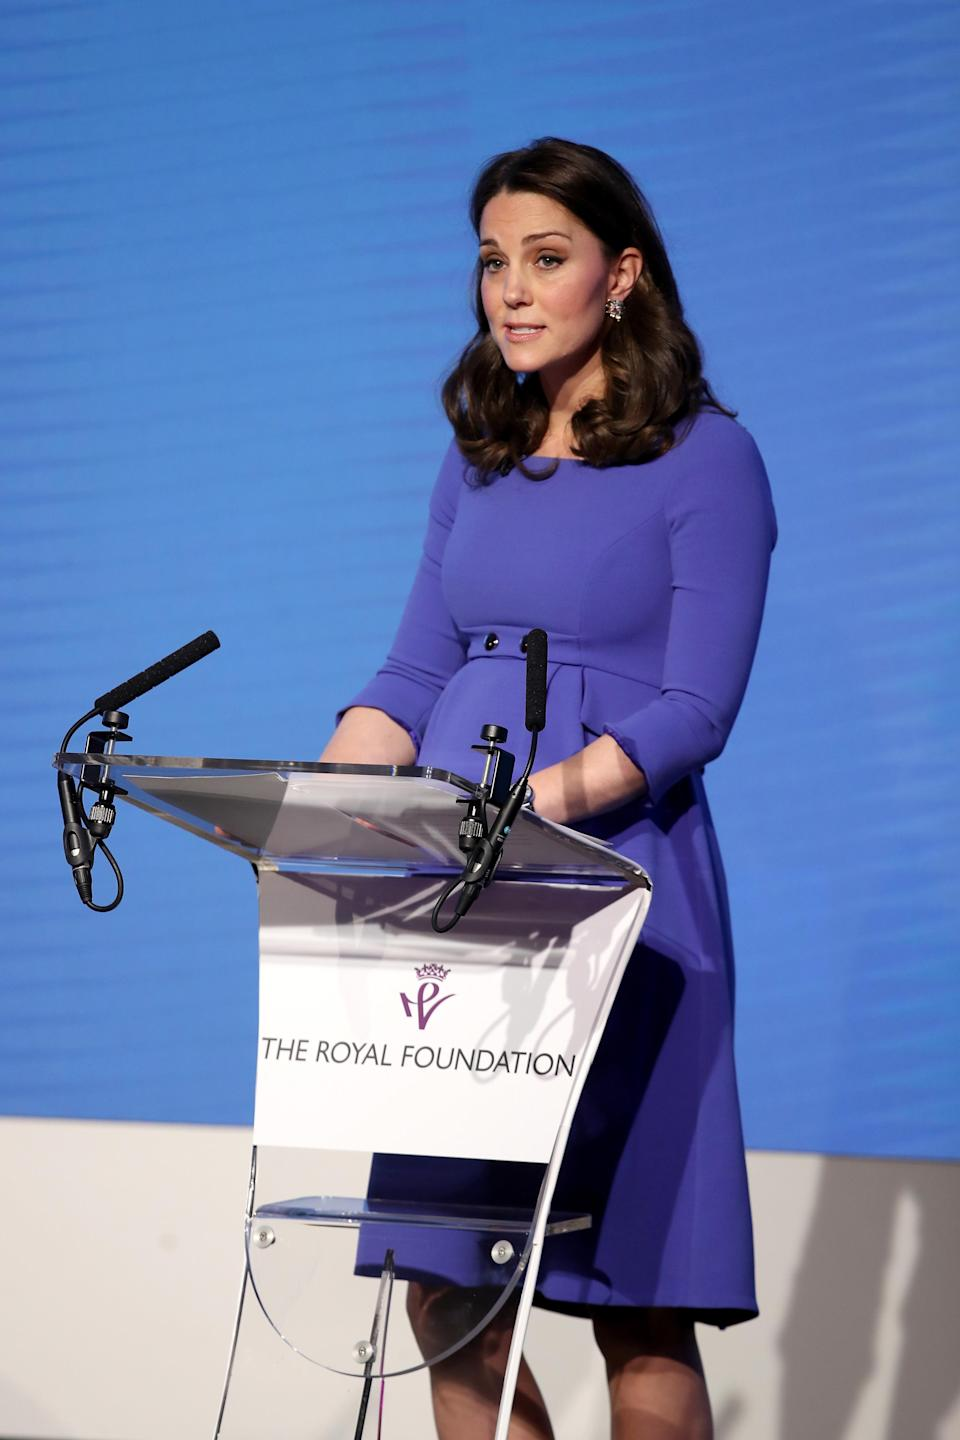 "<p>The Duchess returned to one of her favourite maternity brand's <a rel=""nofollow noopener"" href=""https://www.seraphine.com/en-gb/a-line-royal-blue-dress.html?ranMID=42153&ranEAID=TnL5HPStwNw&ranSiteID=TnL5HPStwNw-3RYvzlNAdEN2TWitUg._Qw&utm_source=Rakuten&utm_medium=affiliate&utm_campaign=Skimlinks.com&utm_content=1"" target=""_blank"" data-ylk=""slk:Seraphine"" class=""link rapid-noclick-resp"">Seraphine</a> with this vivd blue, empire line dress to mark the first joint engagement with her soon-to-be sister in law Meghan Markle. The £99 knee-length dress showcased the Duchess growing bump beautifully. Unsurprisingly it is now sold out online. [Photo: Getty] </p>"